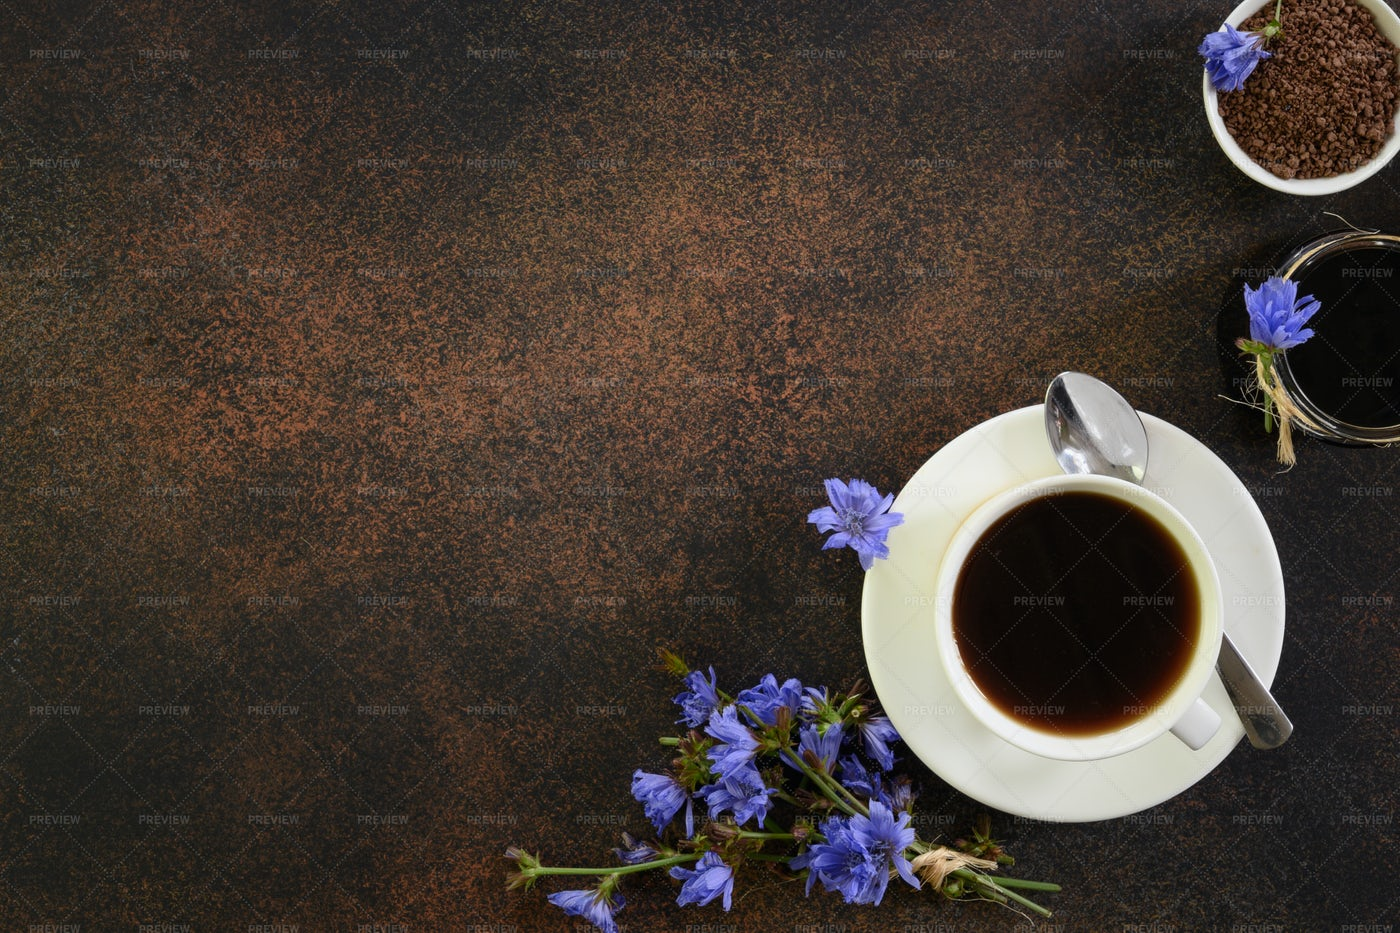 Chicory Drink And Flowers: Stock Photos